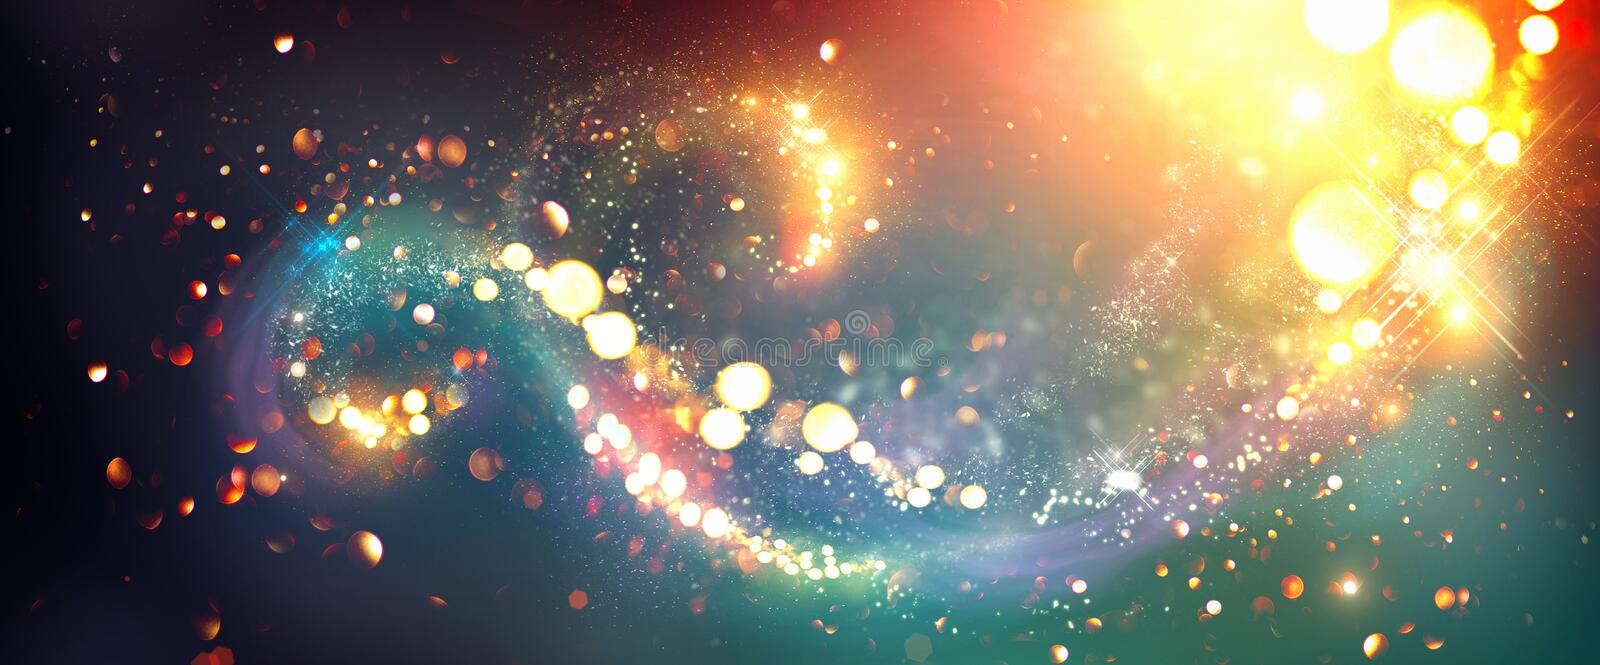 Christmas background. Golden glittering stars swirls royalty free illustration